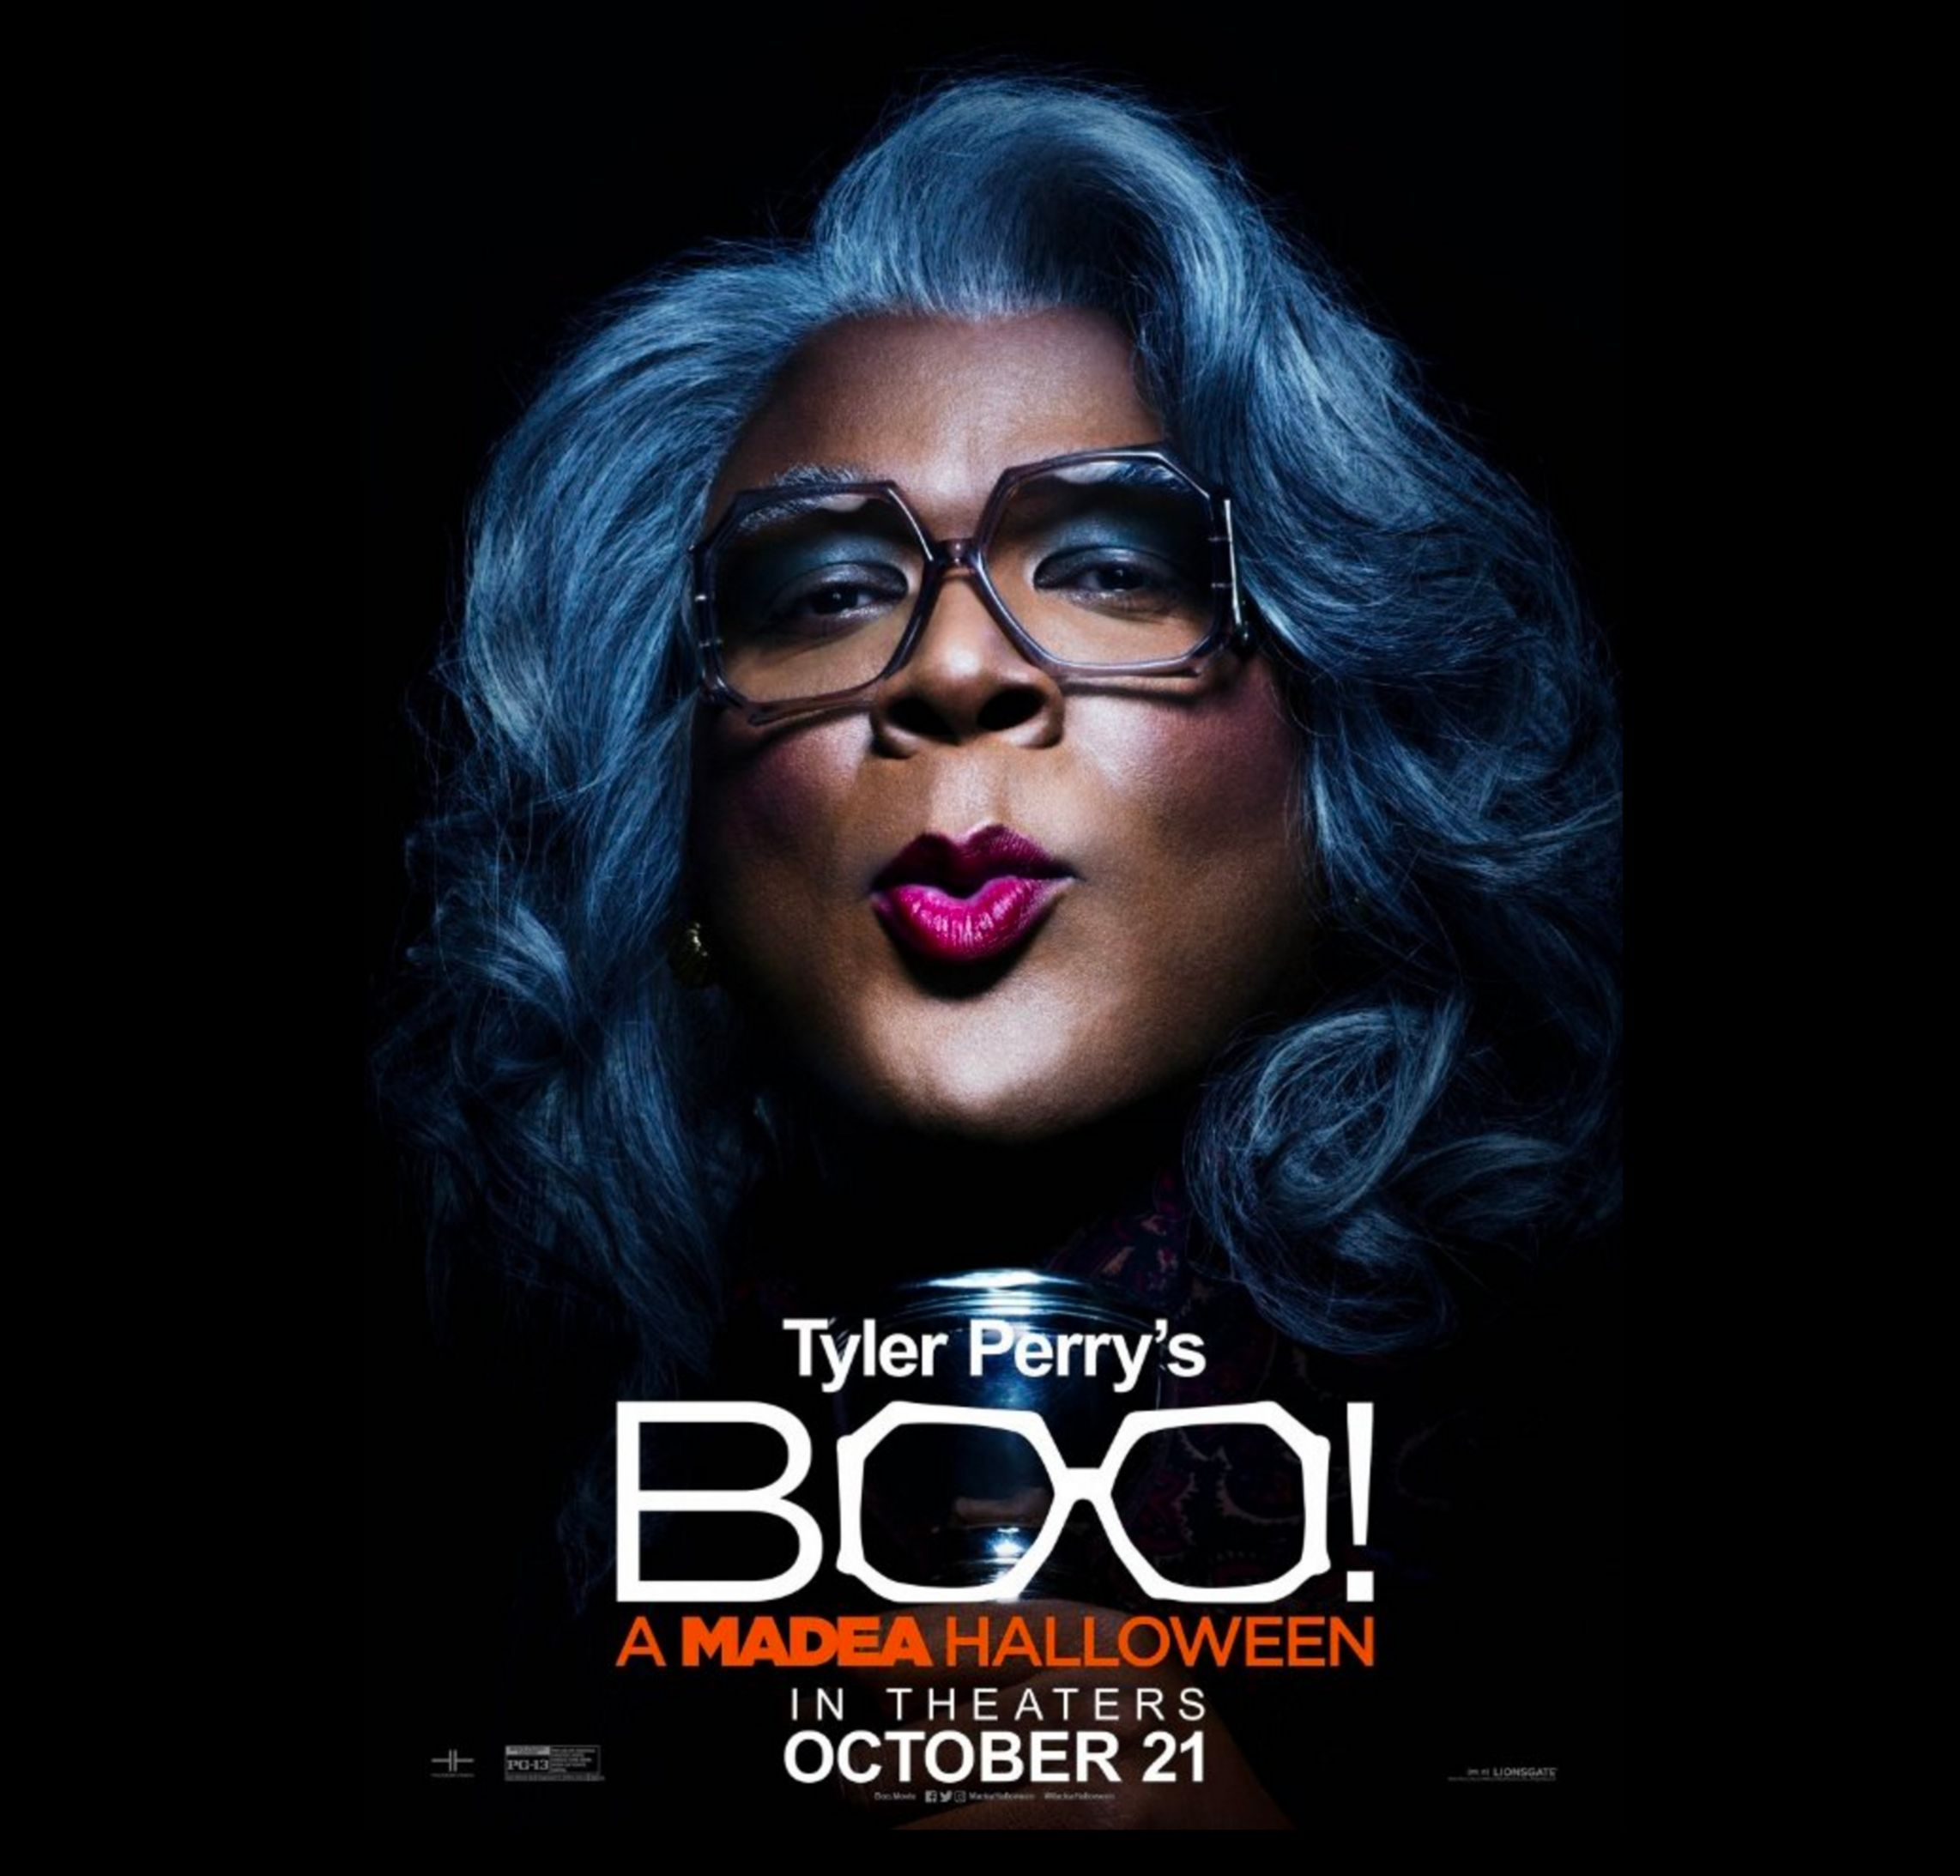 madea halloween' scares off 'jack reacher' sequel at the box office